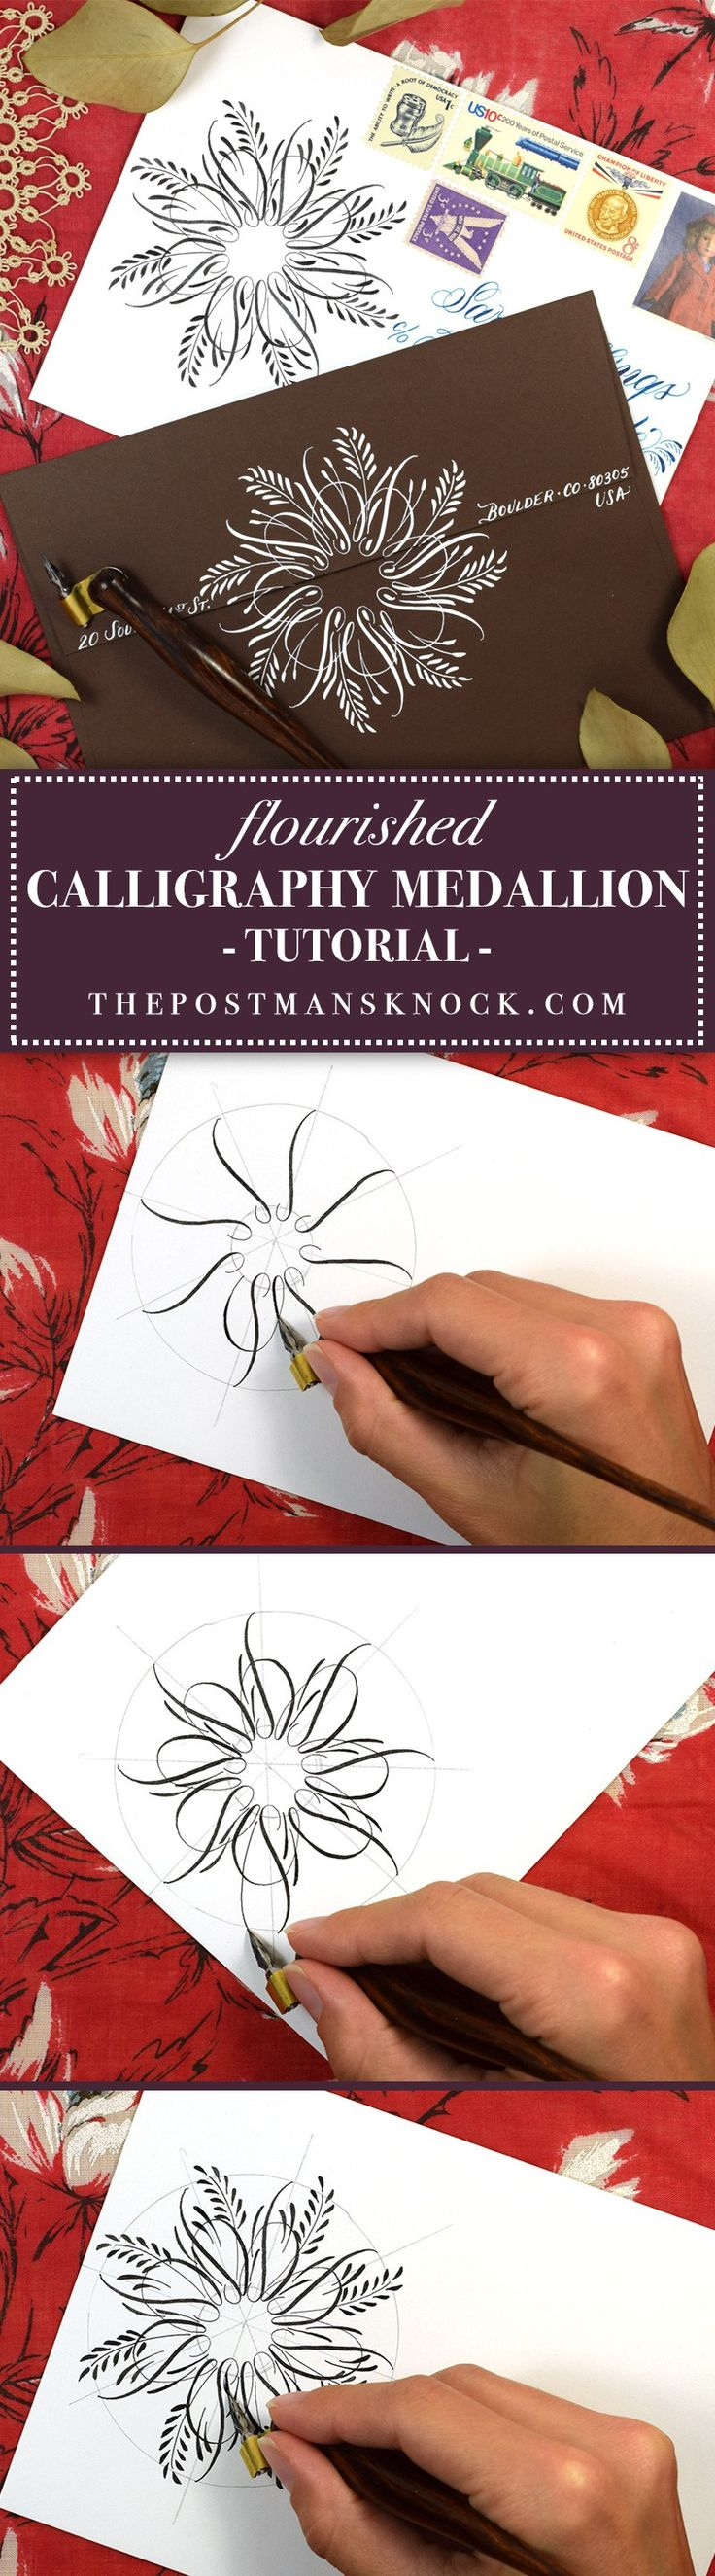 Flourished Calligraphy Medallion Tutorial // The Postman's Knock